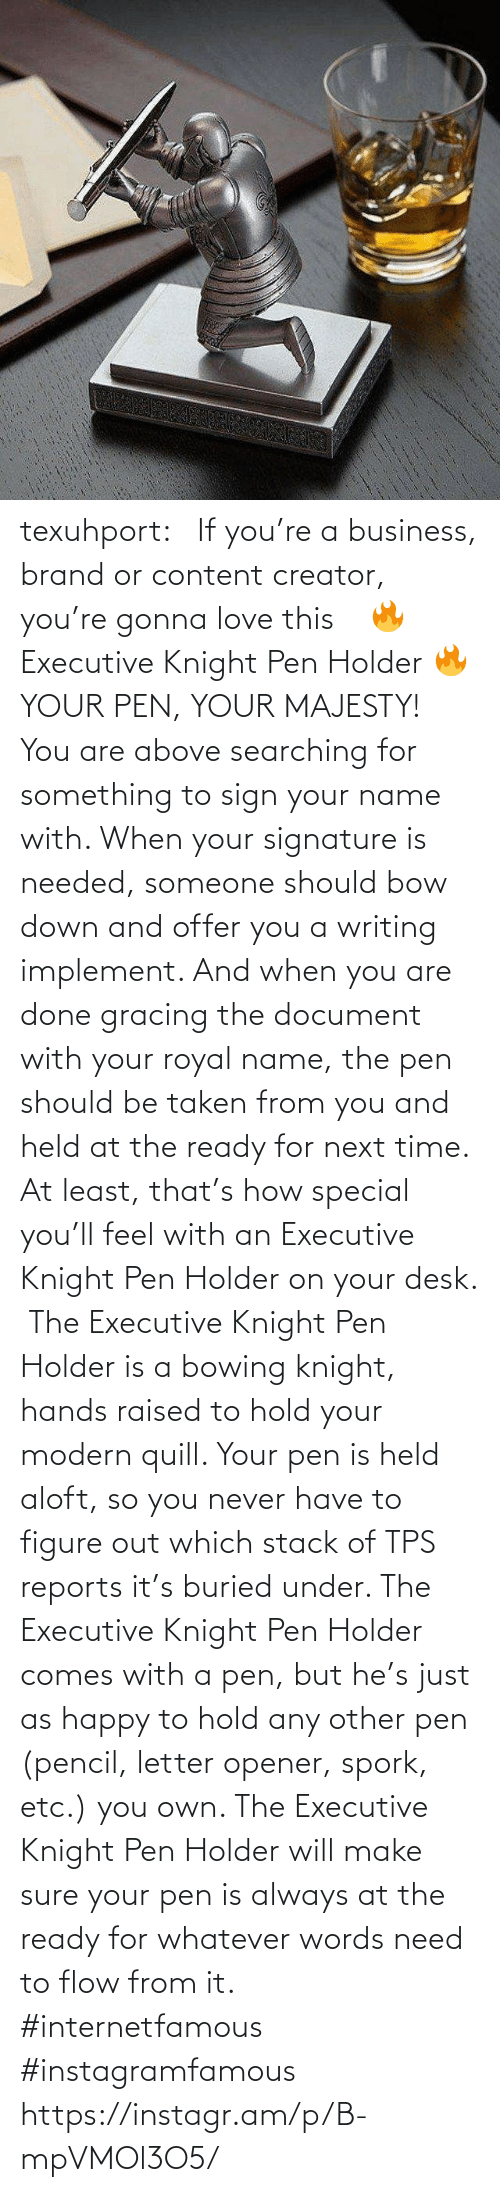 modern: texuhport:⎆ If you're a business, brand or content creator, you're gonna love this ⎆⁣ 🔥 Executive Knight Pen Holder 🔥⁣ YOUR PEN, YOUR MAJESTY!⁣ ⁣ You are above searching for something to sign your name with. When your signature is needed, someone should bow down and offer you a writing implement. And when you are done gracing the document with your royal name, the pen should be taken from you and held at the ready for next time. At least, that's how special you'll feel with an Executive Knight Pen Holder on your desk.⁣ ⁣ The Executive Knight Pen Holder is a bowing knight, hands raised to hold your modern quill. Your pen is held aloft, so you never have to figure out which stack of TPS reports it's buried under. The Executive Knight Pen Holder comes with a pen, but he's just as happy to hold any other pen (pencil, letter opener, spork, etc.) you own. The Executive Knight Pen Holder will make sure your pen is always at the ready for whatever words need to flow from it.⁣ #internetfamous  #instagramfamous https://instagr.am/p/B-mpVMOl3O5/